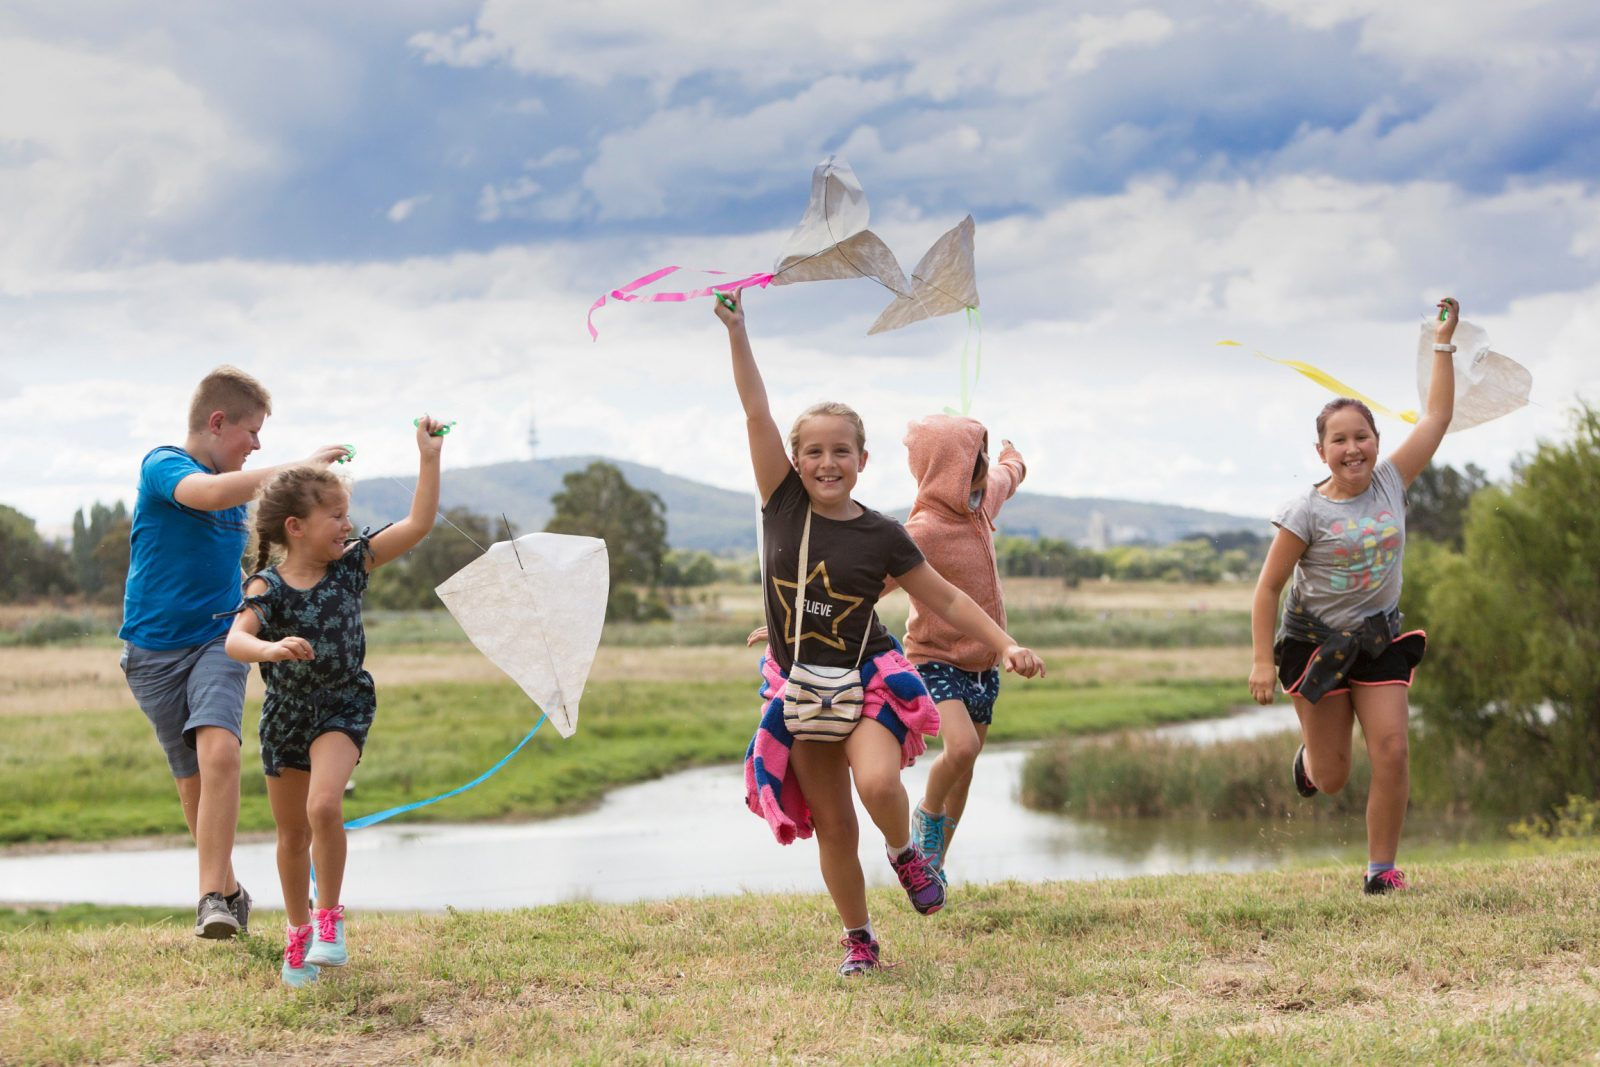 Kids flying kites in front of the wetlands.